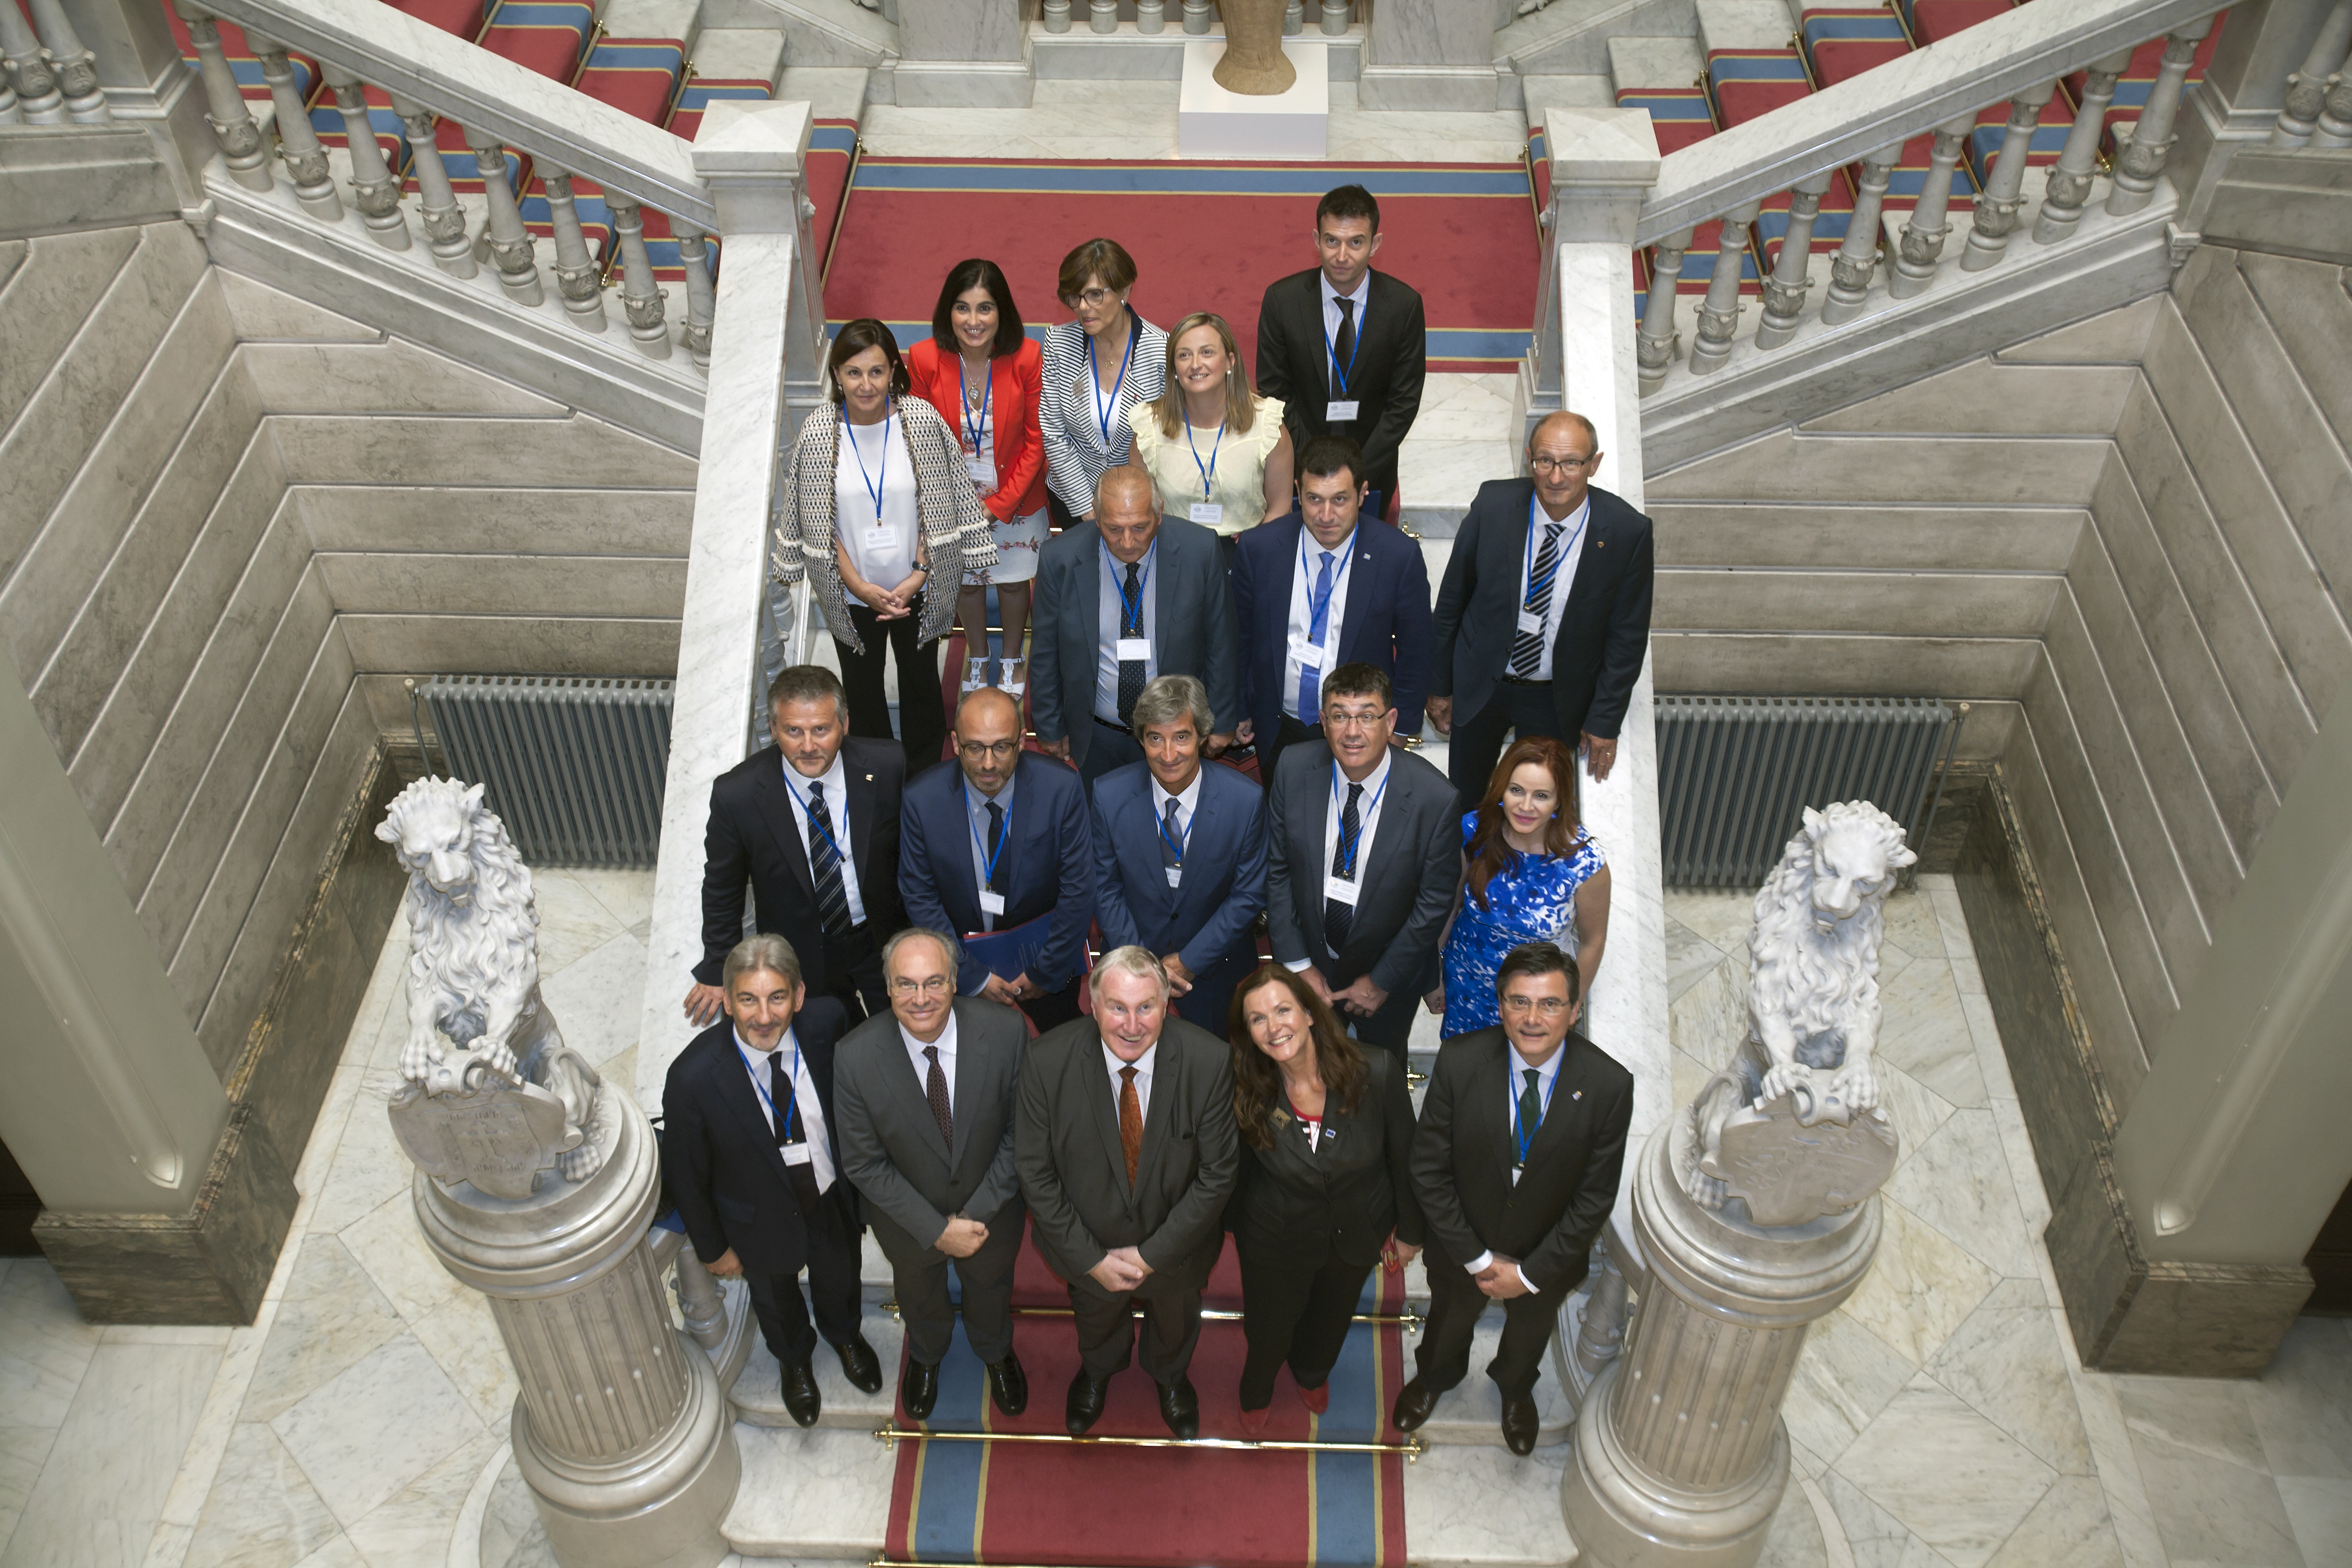 CALRE's 20th anniversary: President Lambertz calls on regional parliaments to contribute to the reflection on Europe